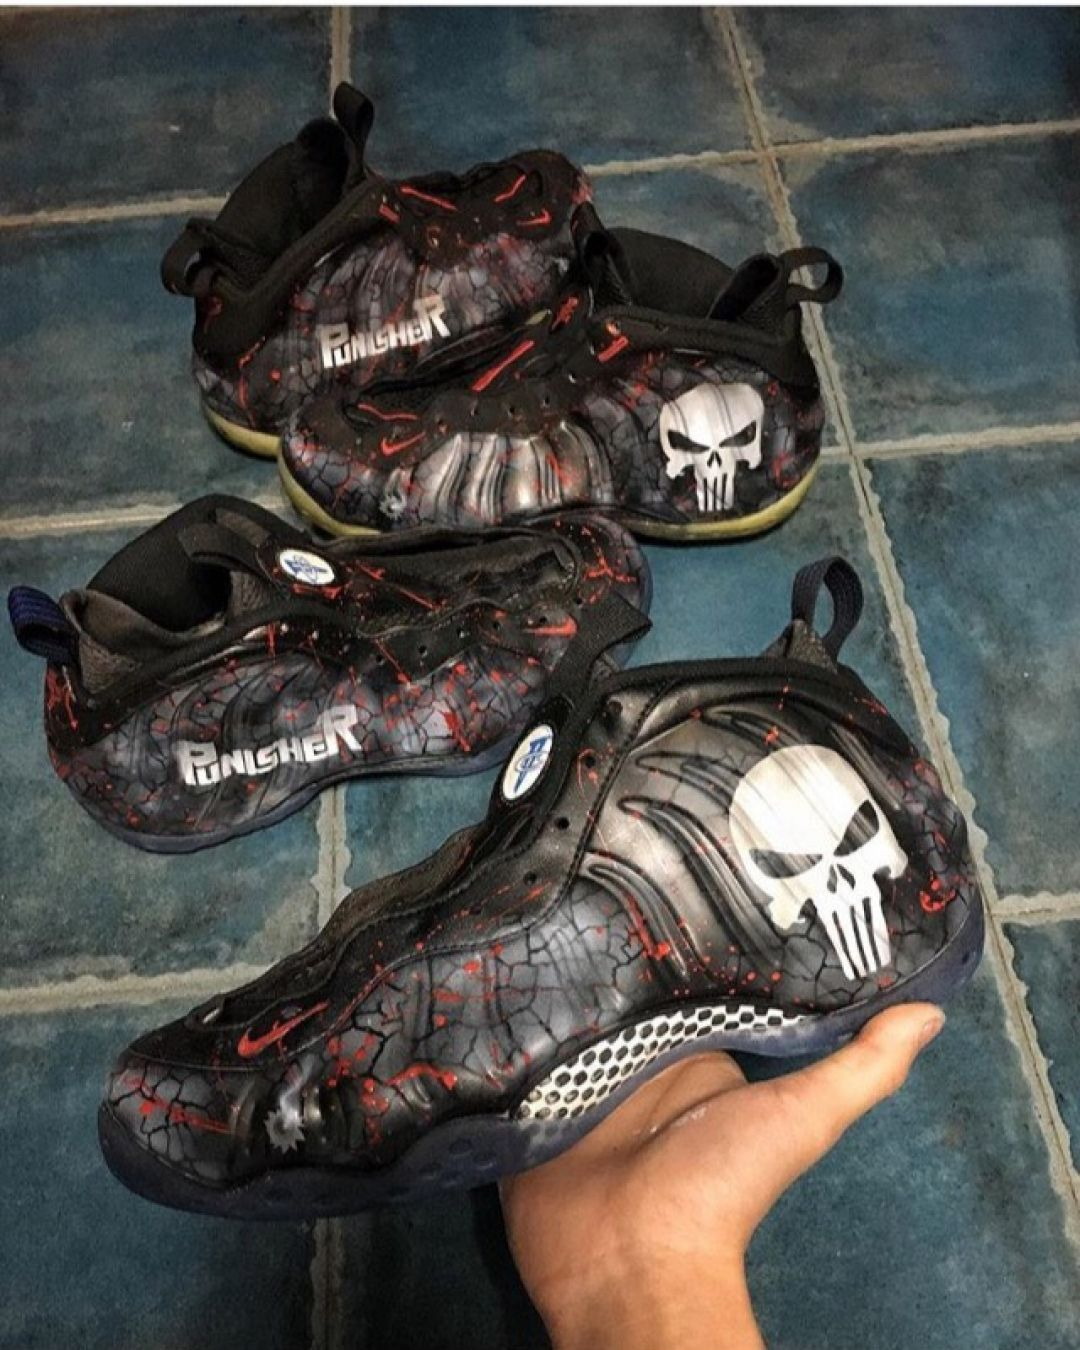 a5679628bb0 Punisher Foamposites by  us 8custom - - Who would cop if released  - -  Follow